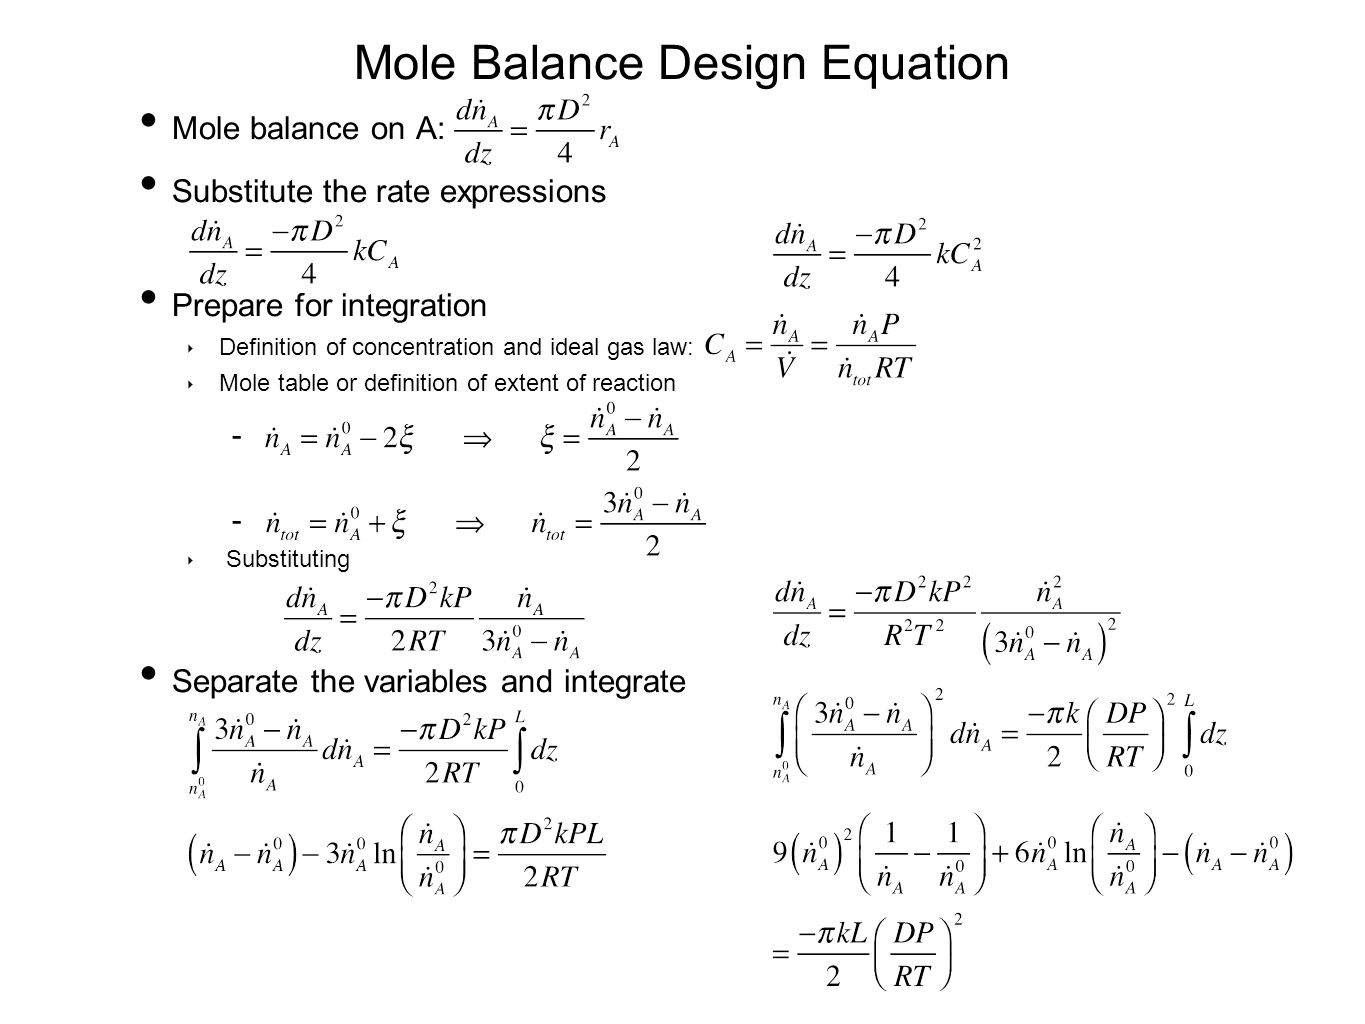 Mole Balance Design Equation Mole balance on A: Substitute the rate expressions Prepare for integration ‣ Definition of concentration and ideal gas law: ‣ Mole table or definition of extent of reaction  ‣ Substituting Separate the variables and integrate